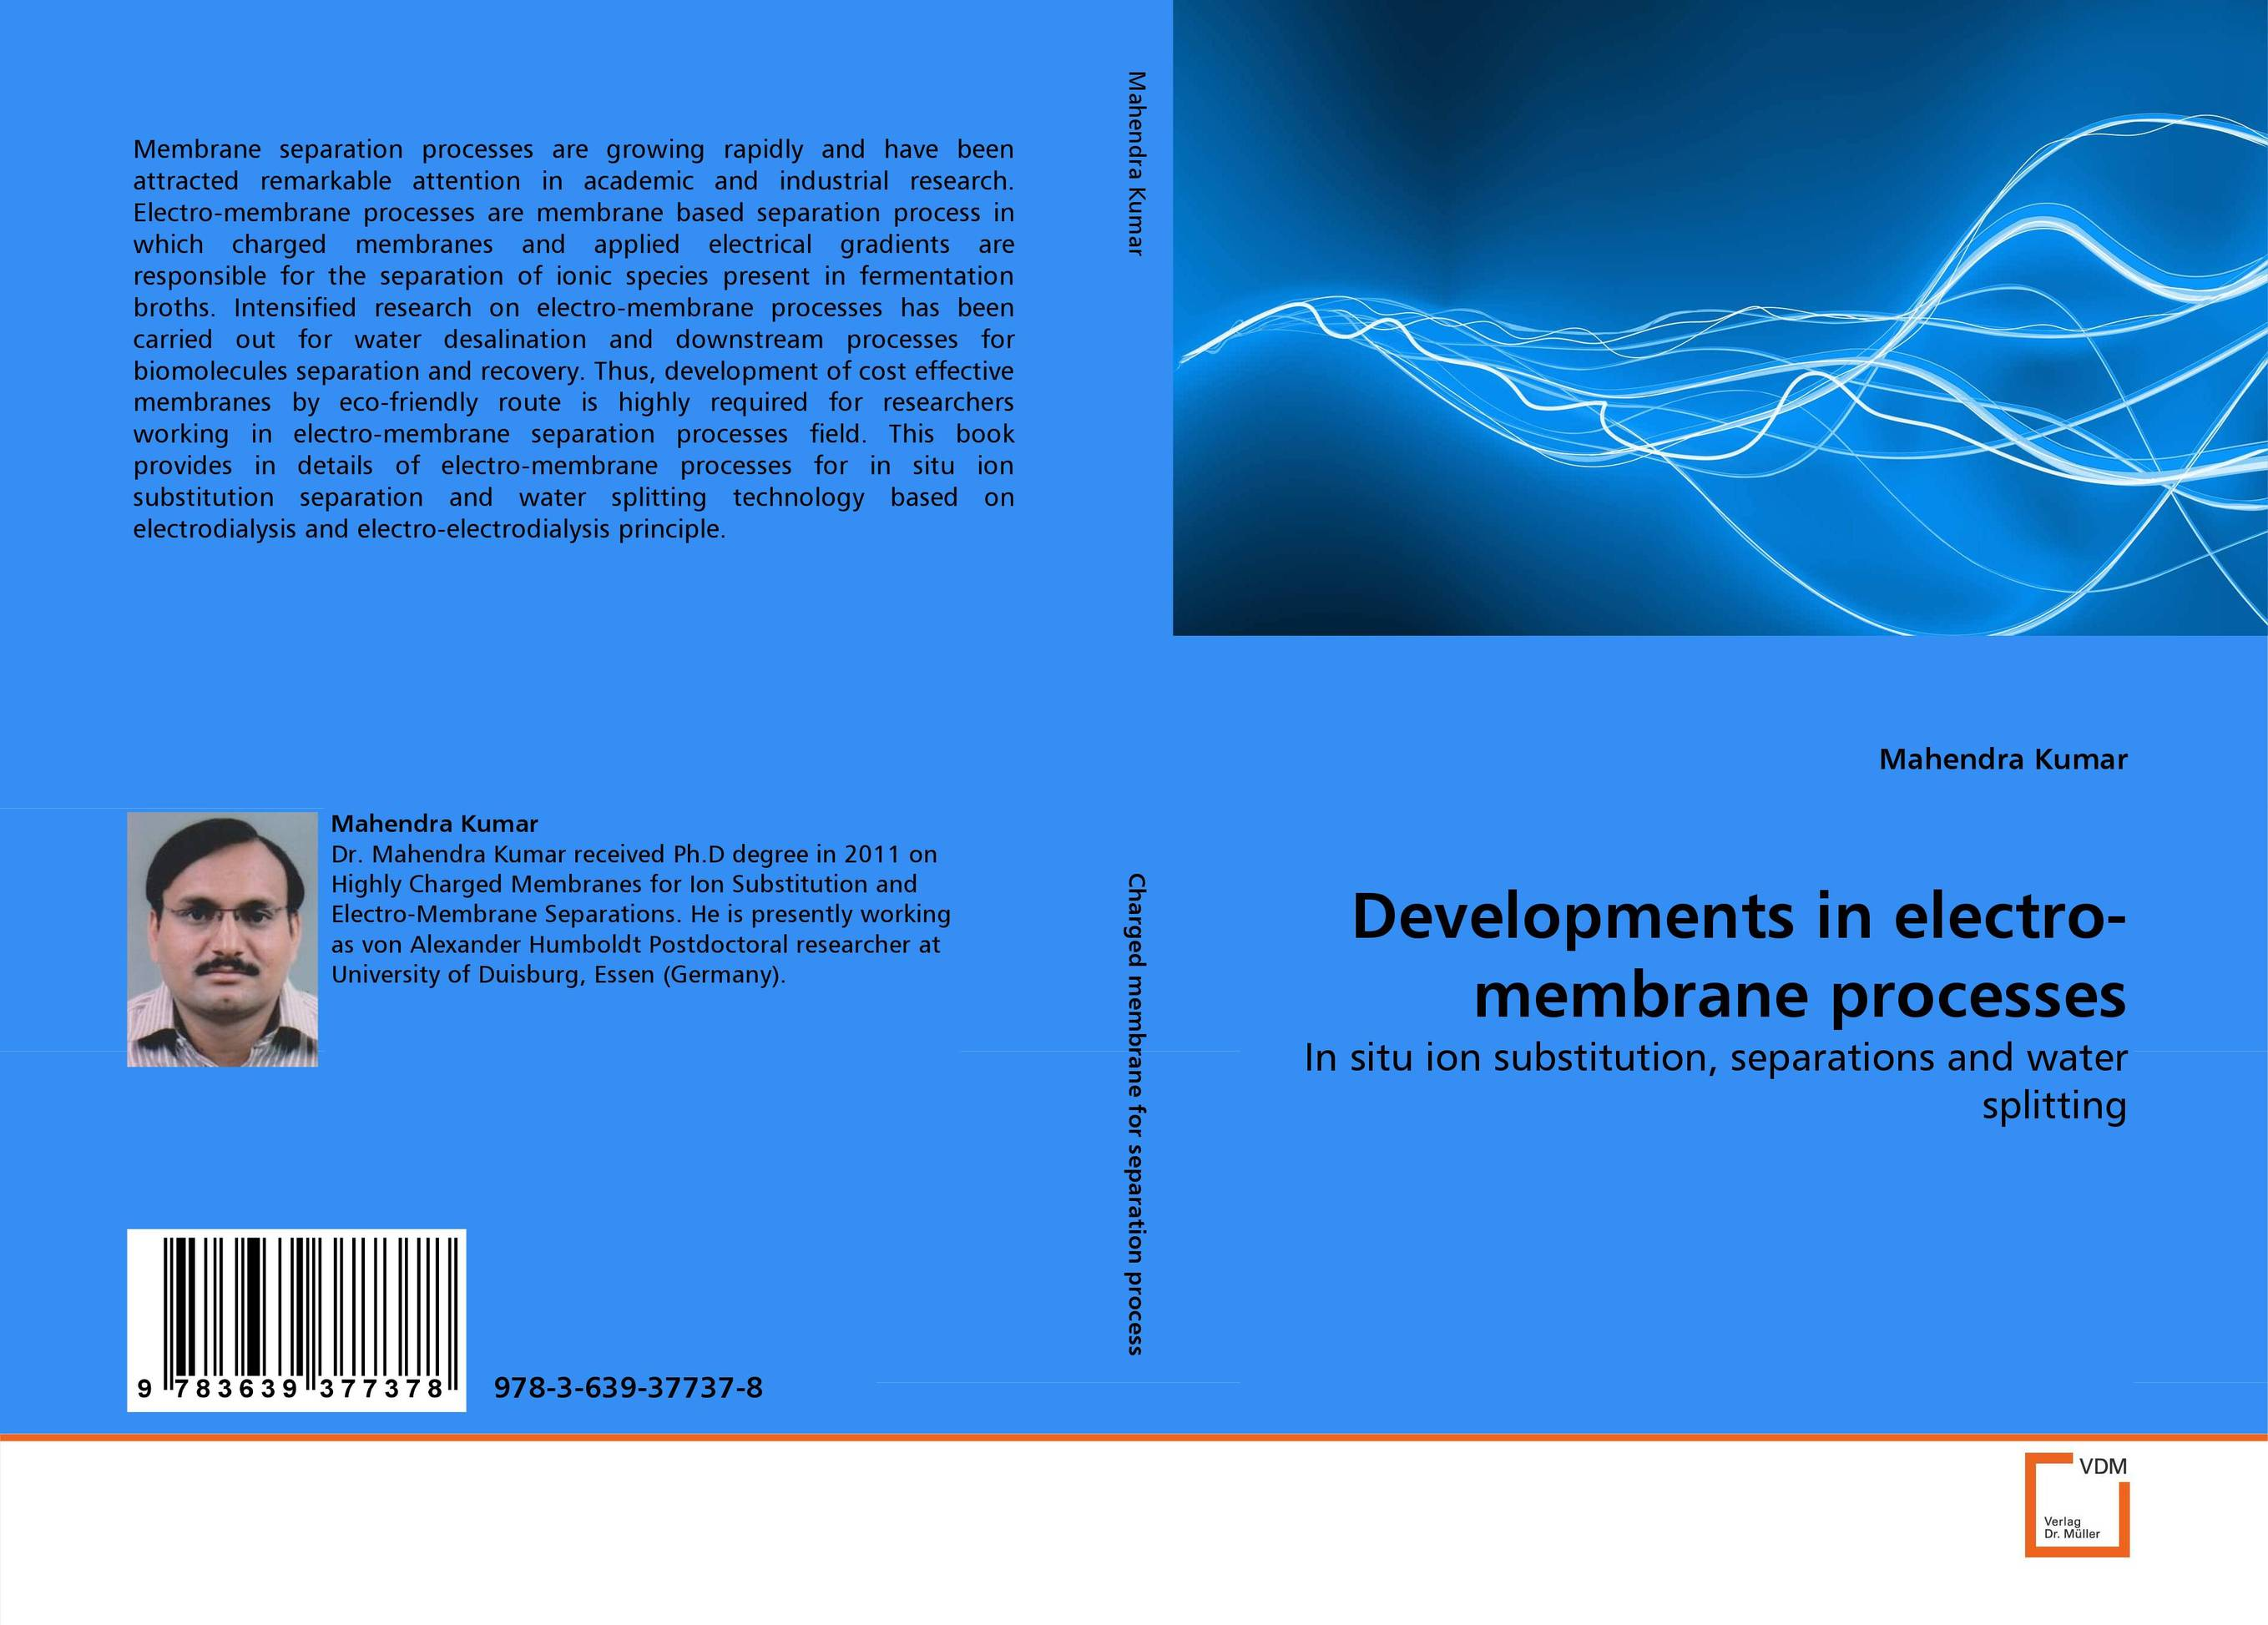 Developments in electro-membrane processes